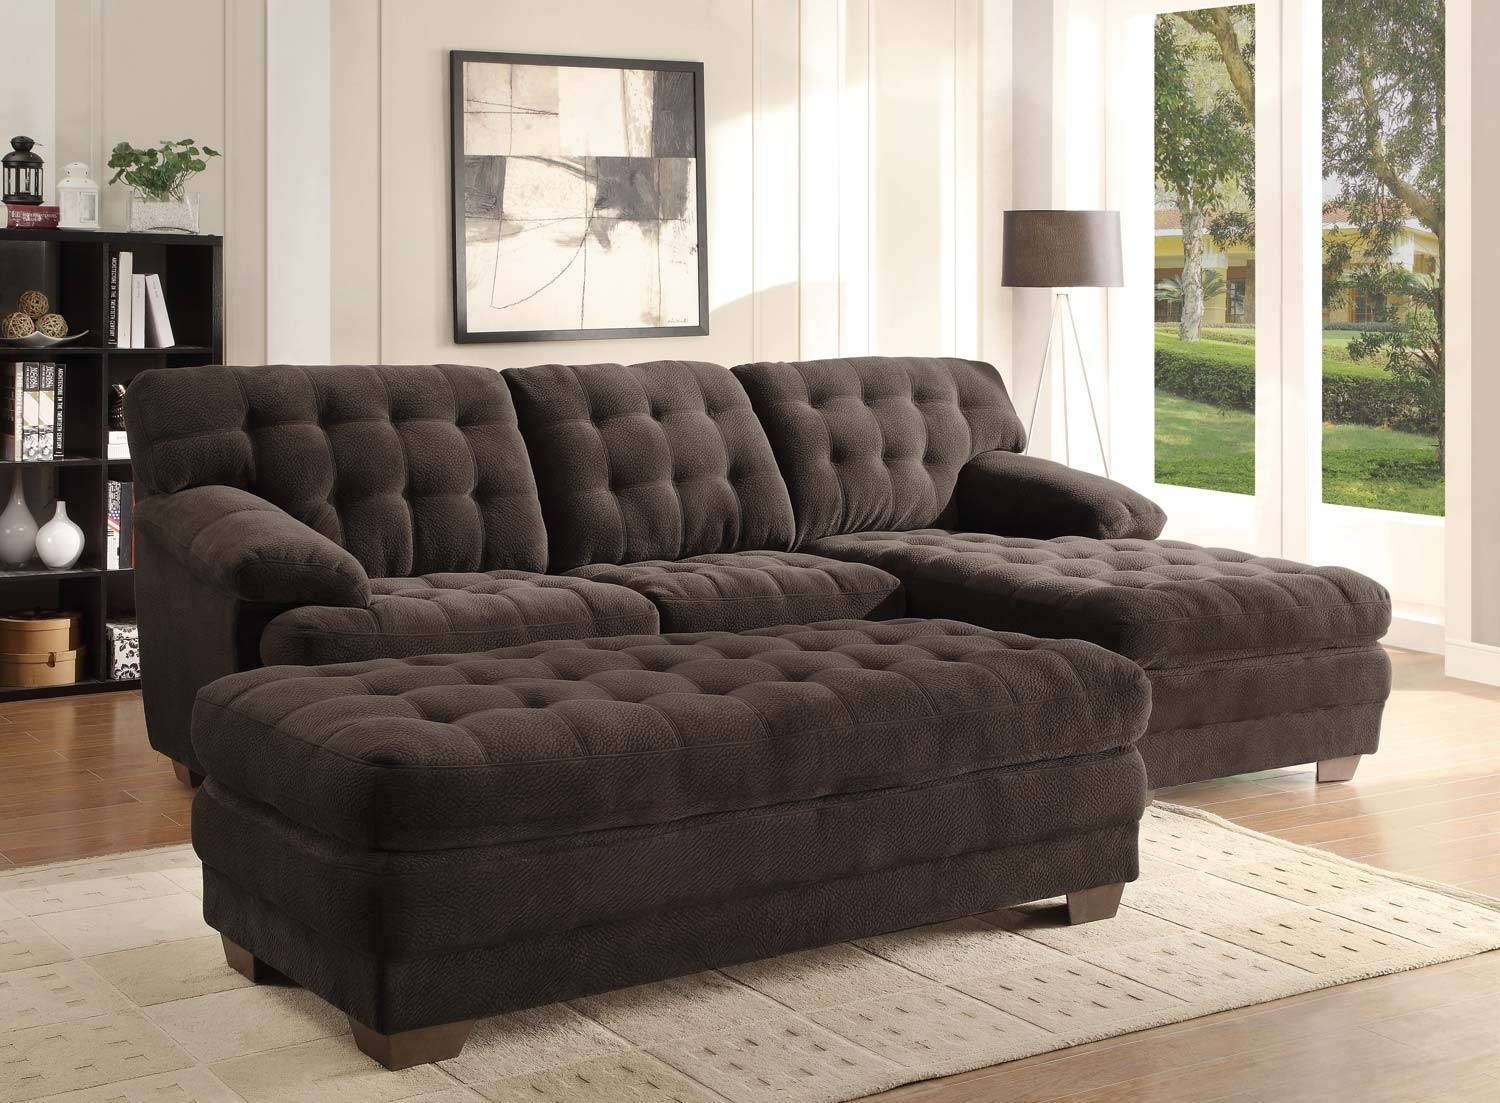 Homelegance Brooks Sectional Sofa Set - Chocolate - Champion with Champion Sectional Sofa (Image 10 of 30)